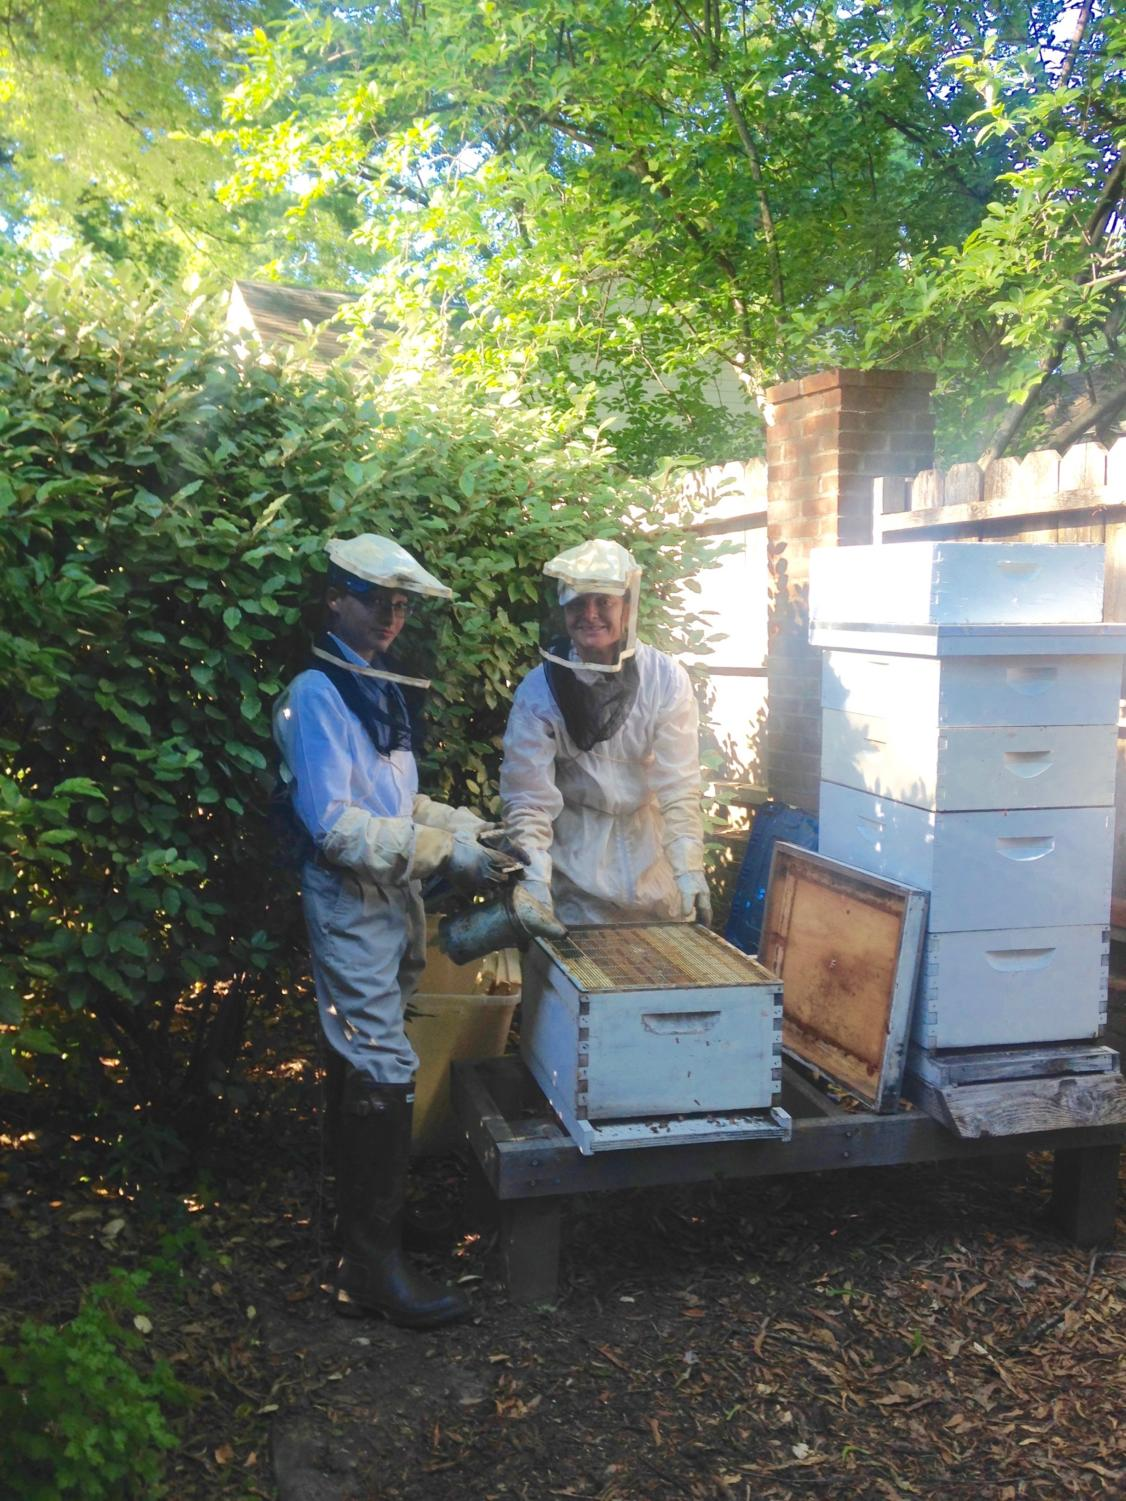 George Metcalf (10) and his mother, Corrie Metcalf, collect honey from colonies in their own backyard.